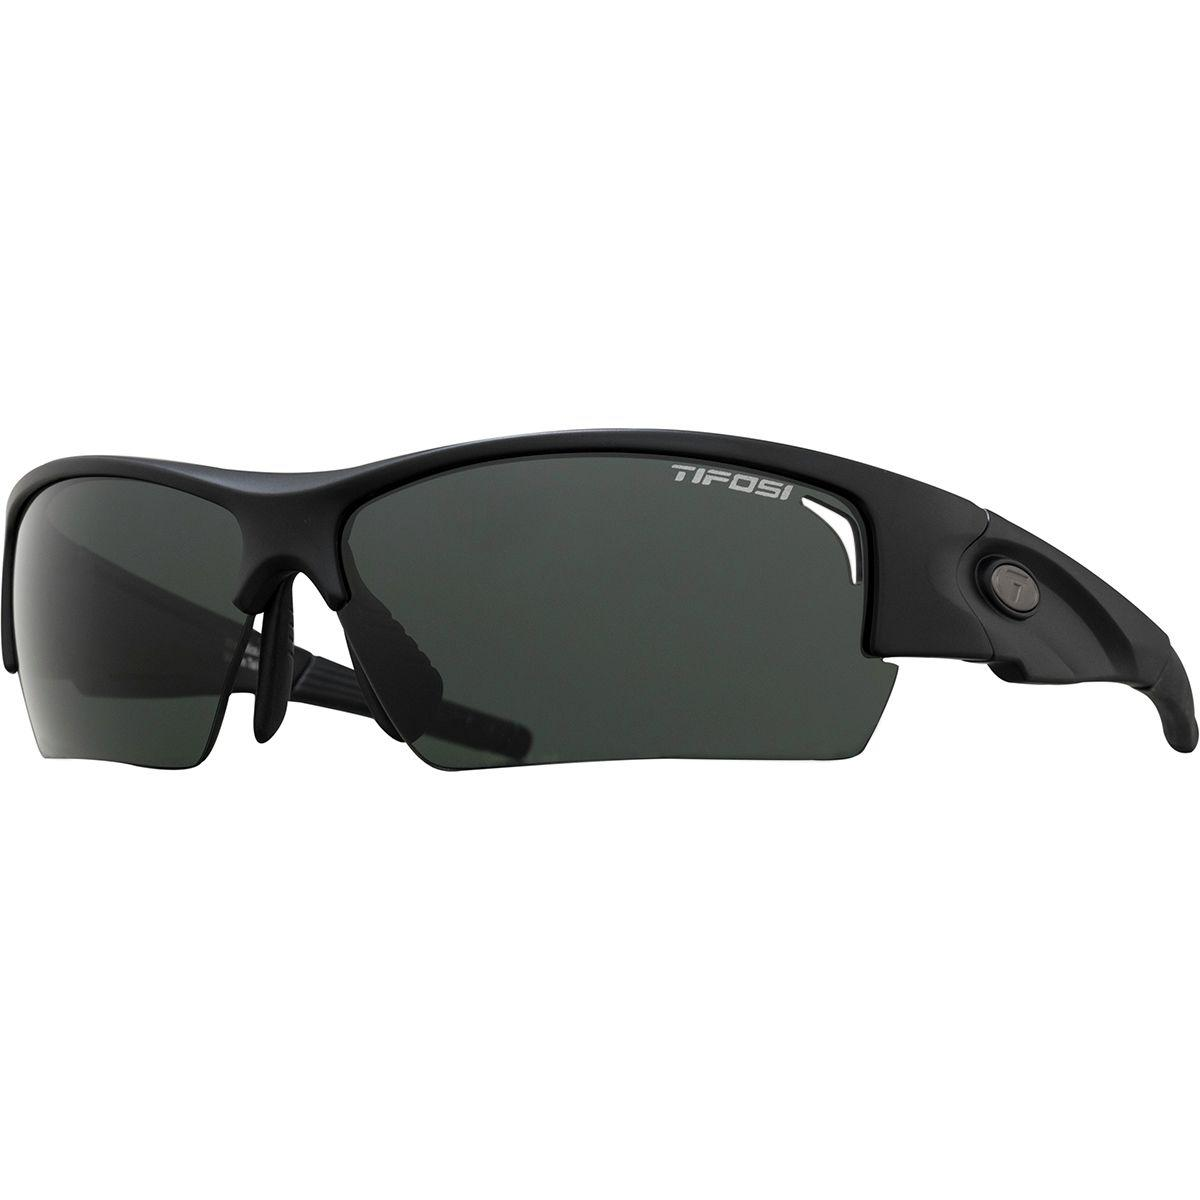 940f08b6f11 Lyst - Tifosi Optics Lore Polarized Sport Sunglasses in Black for Men